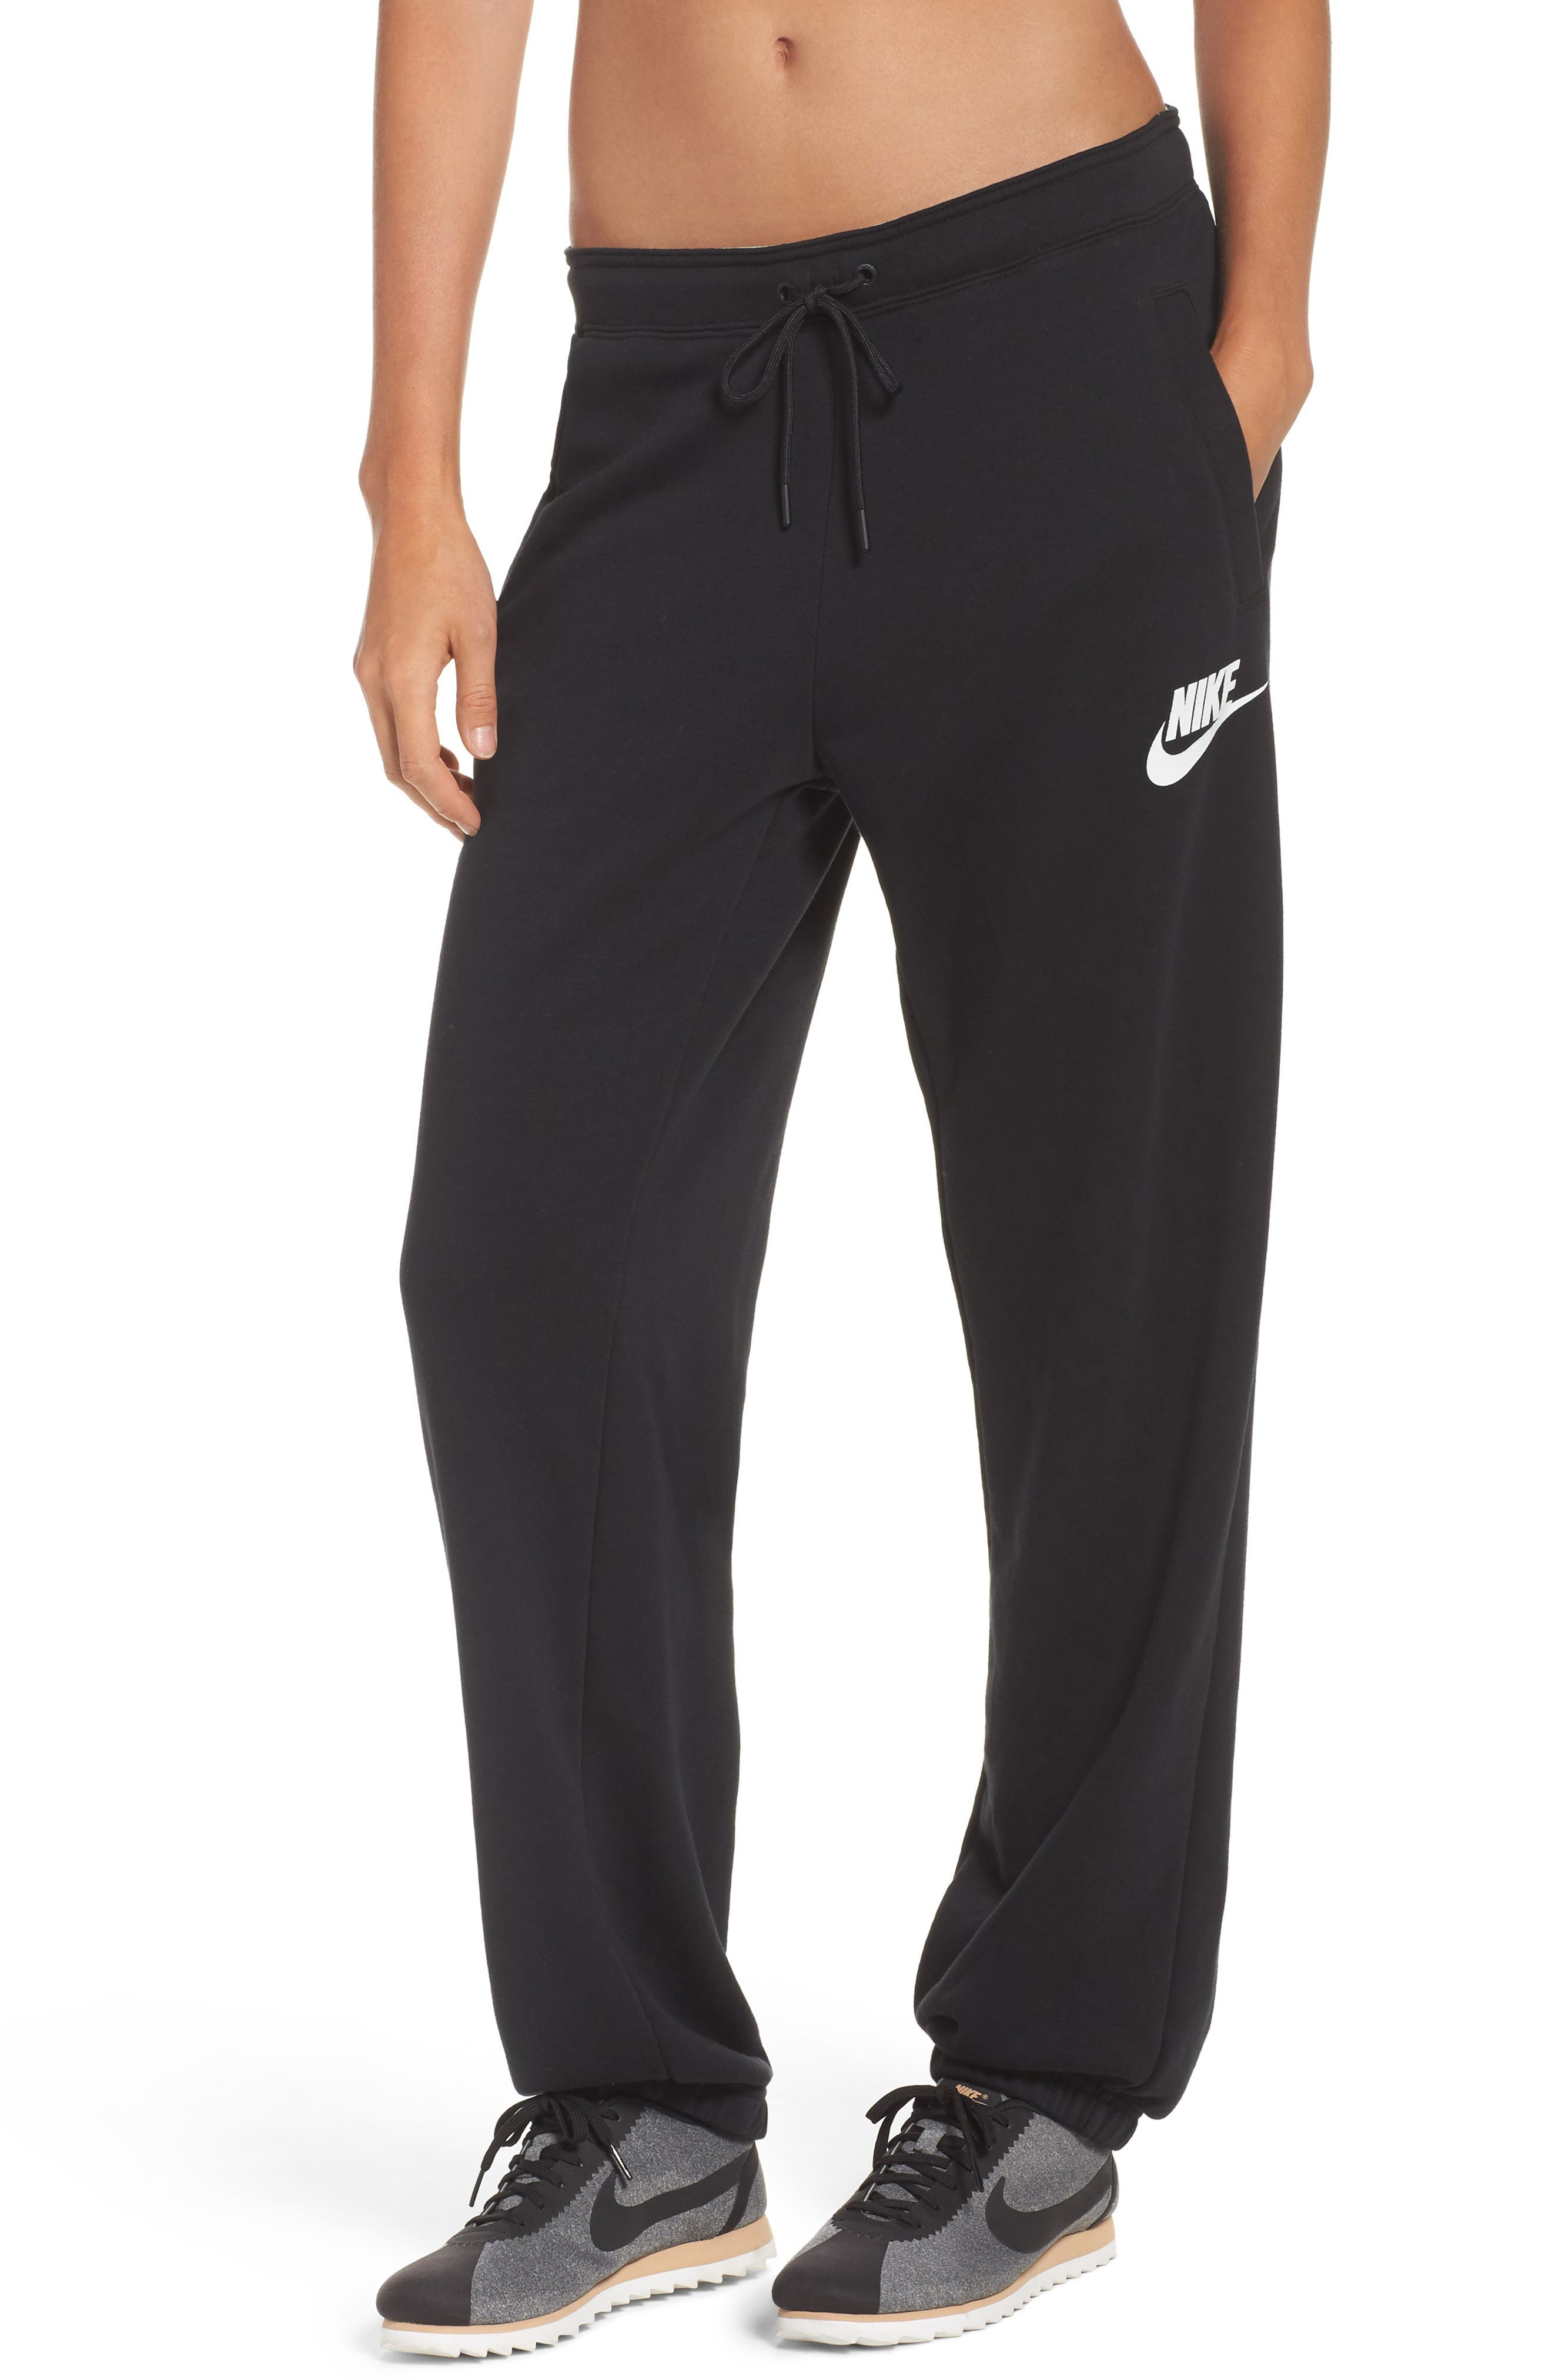 Rally Loose Fit Jogger Sweatpants,                         Main,                         color, Black/ White